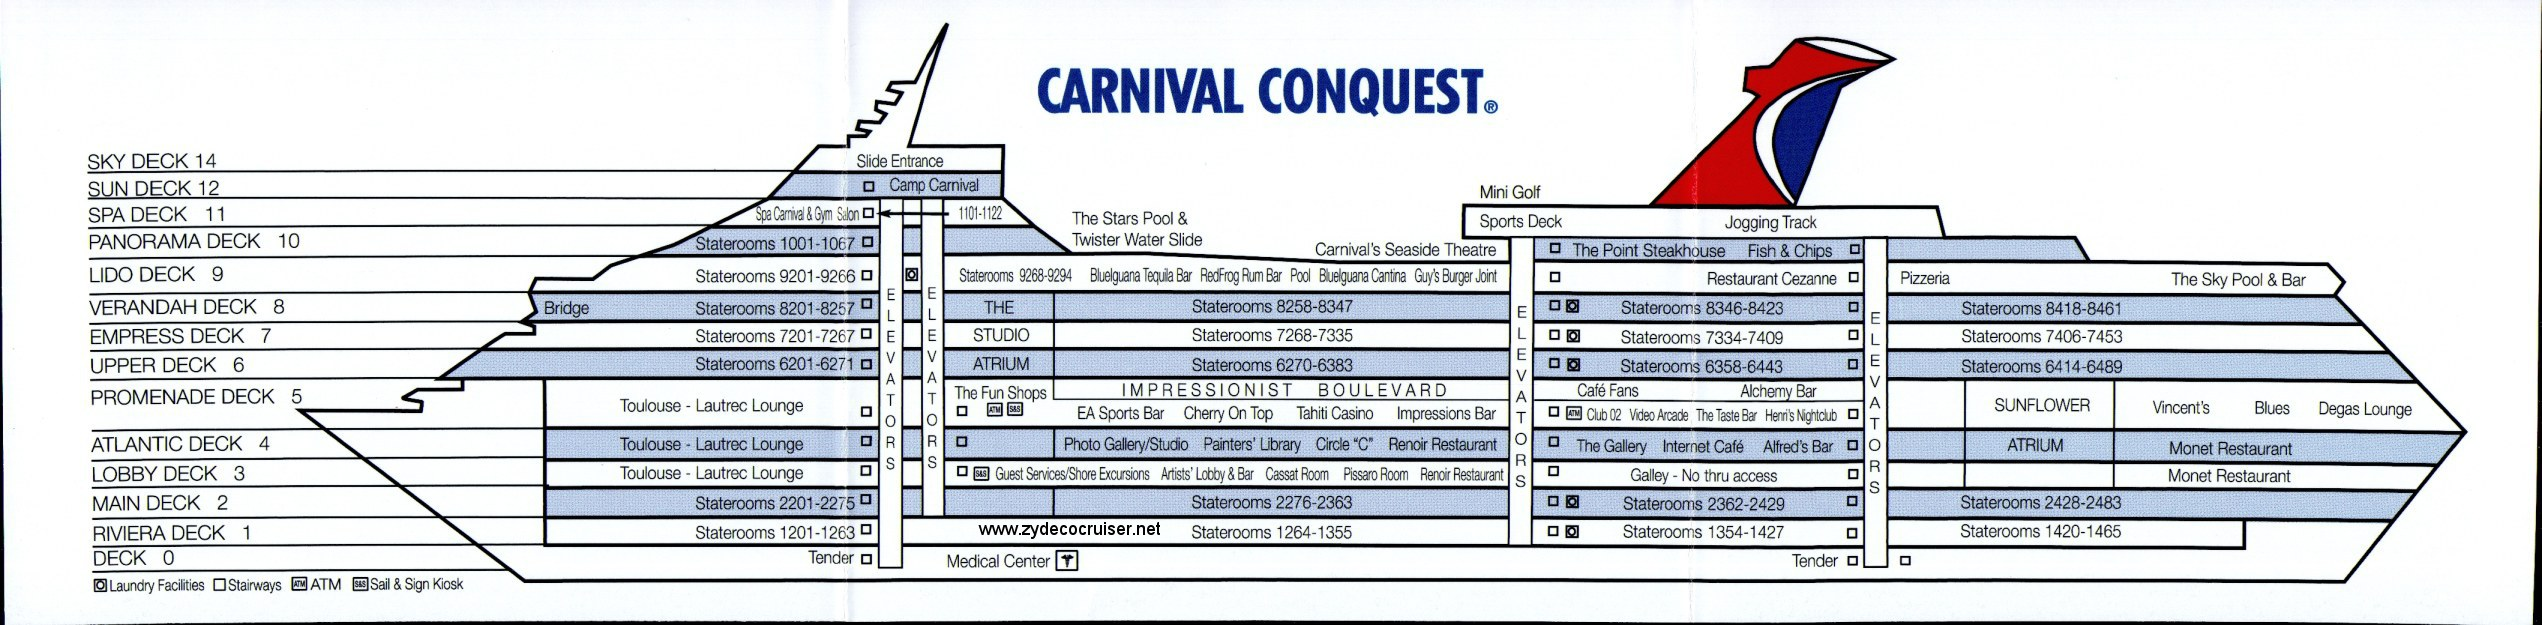 31 pinterest carnival cruise fantasy deck plan punchaos inspiration 29 carnival cruise fantasy deck plan instagram baanklon Choice Image